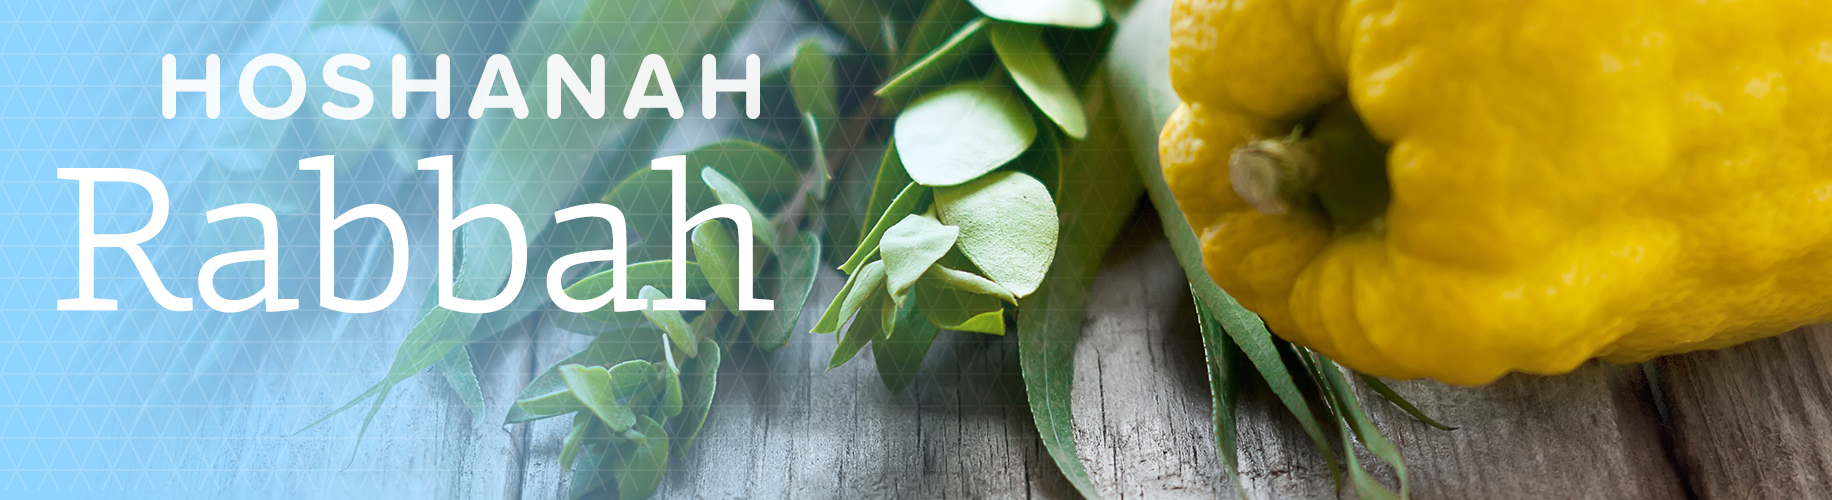 Hoshanah Rabbah Jewish Holiday Information